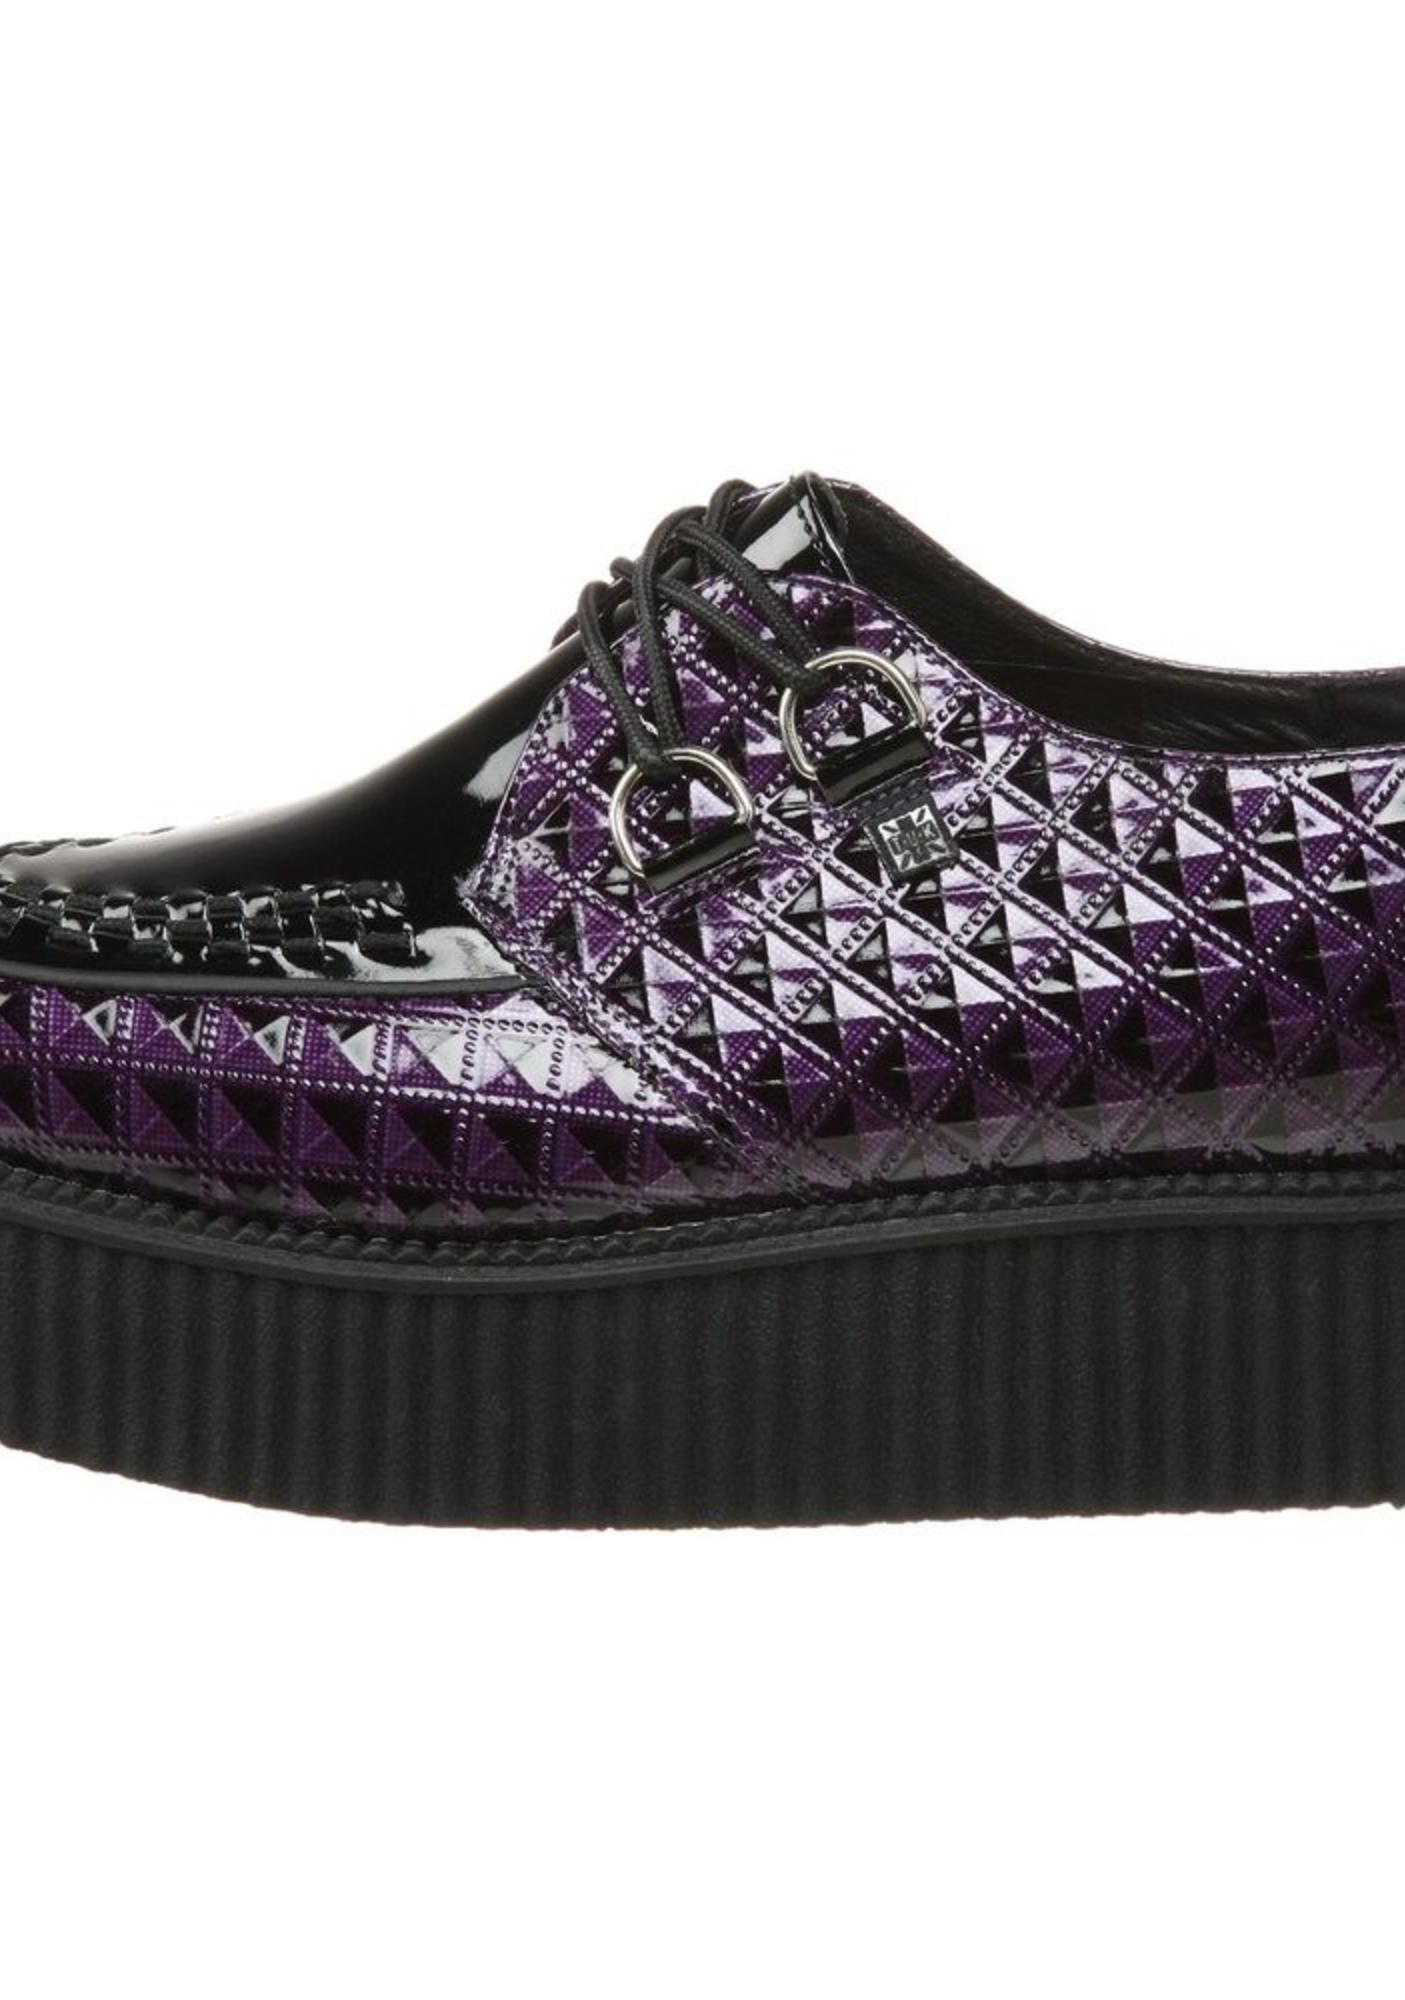 T.U.K. Purple Pyramid Mondo Creeper